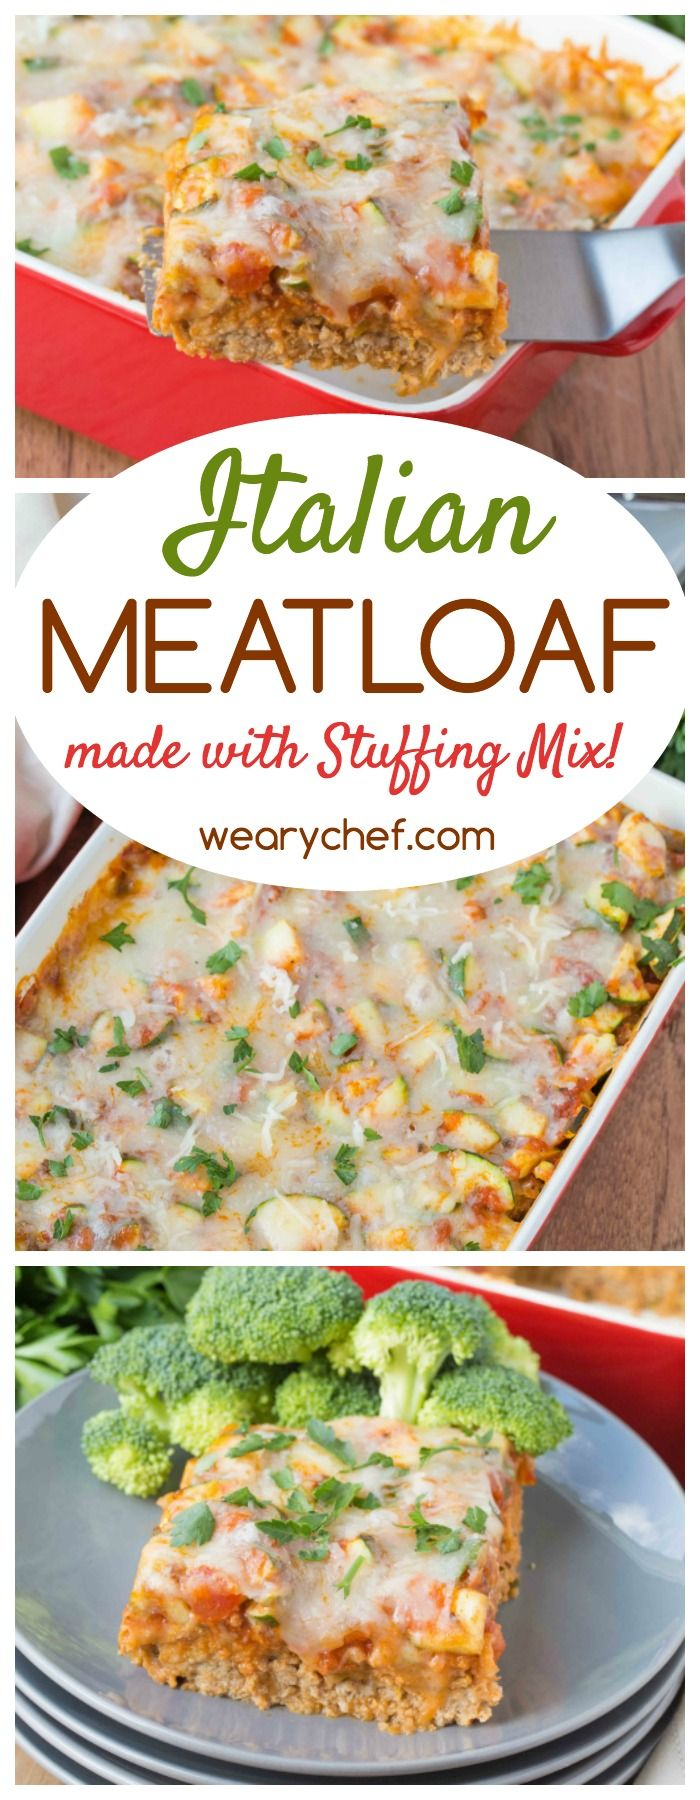 Best 20+ Stove top stuffing ideas on Pinterest | Stove top recipes ...